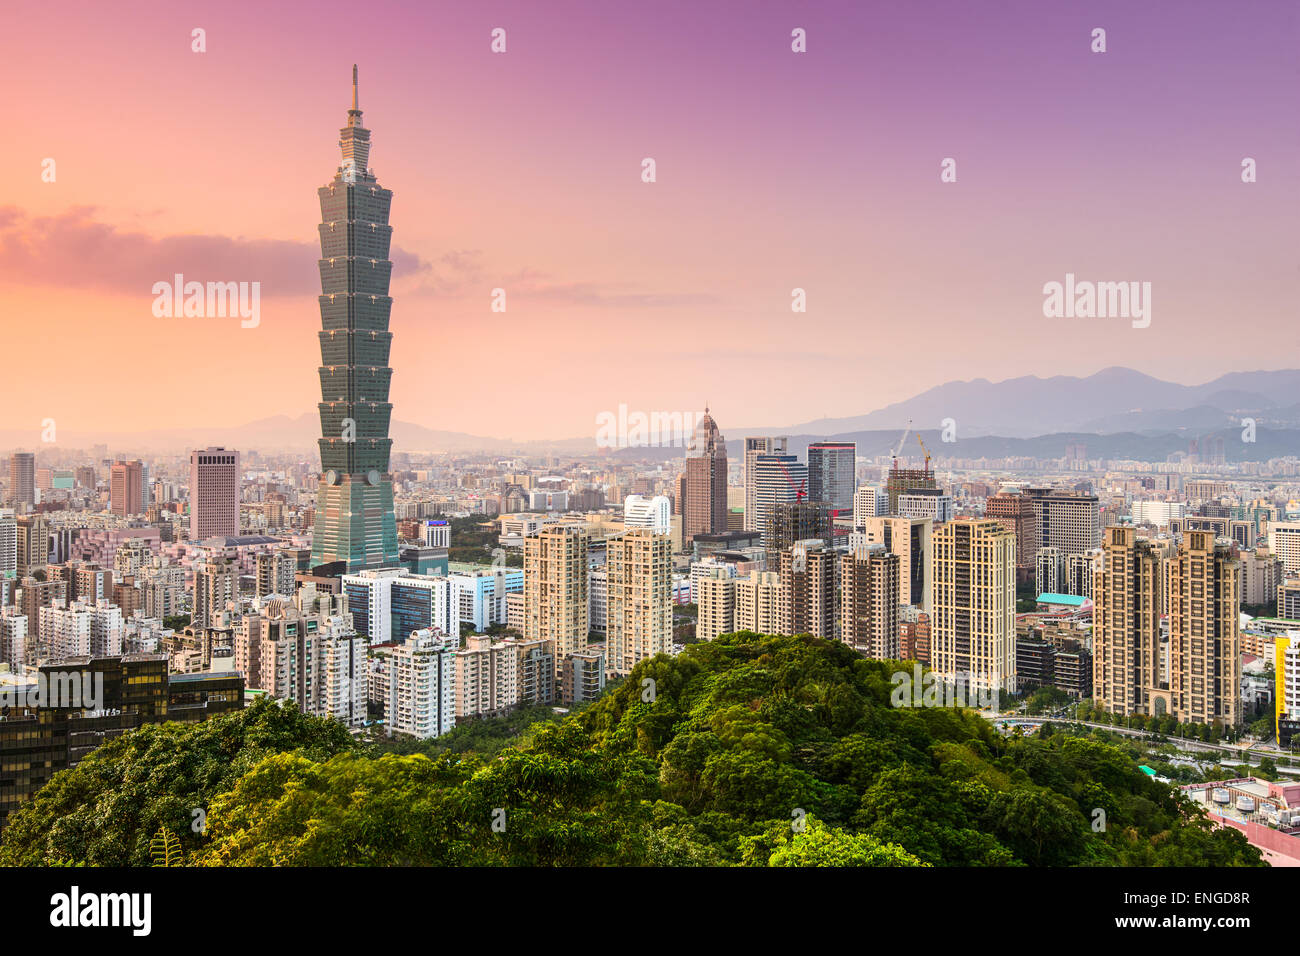 Taipei, Taiwan skyline of the Xinyi District. - Stock Image